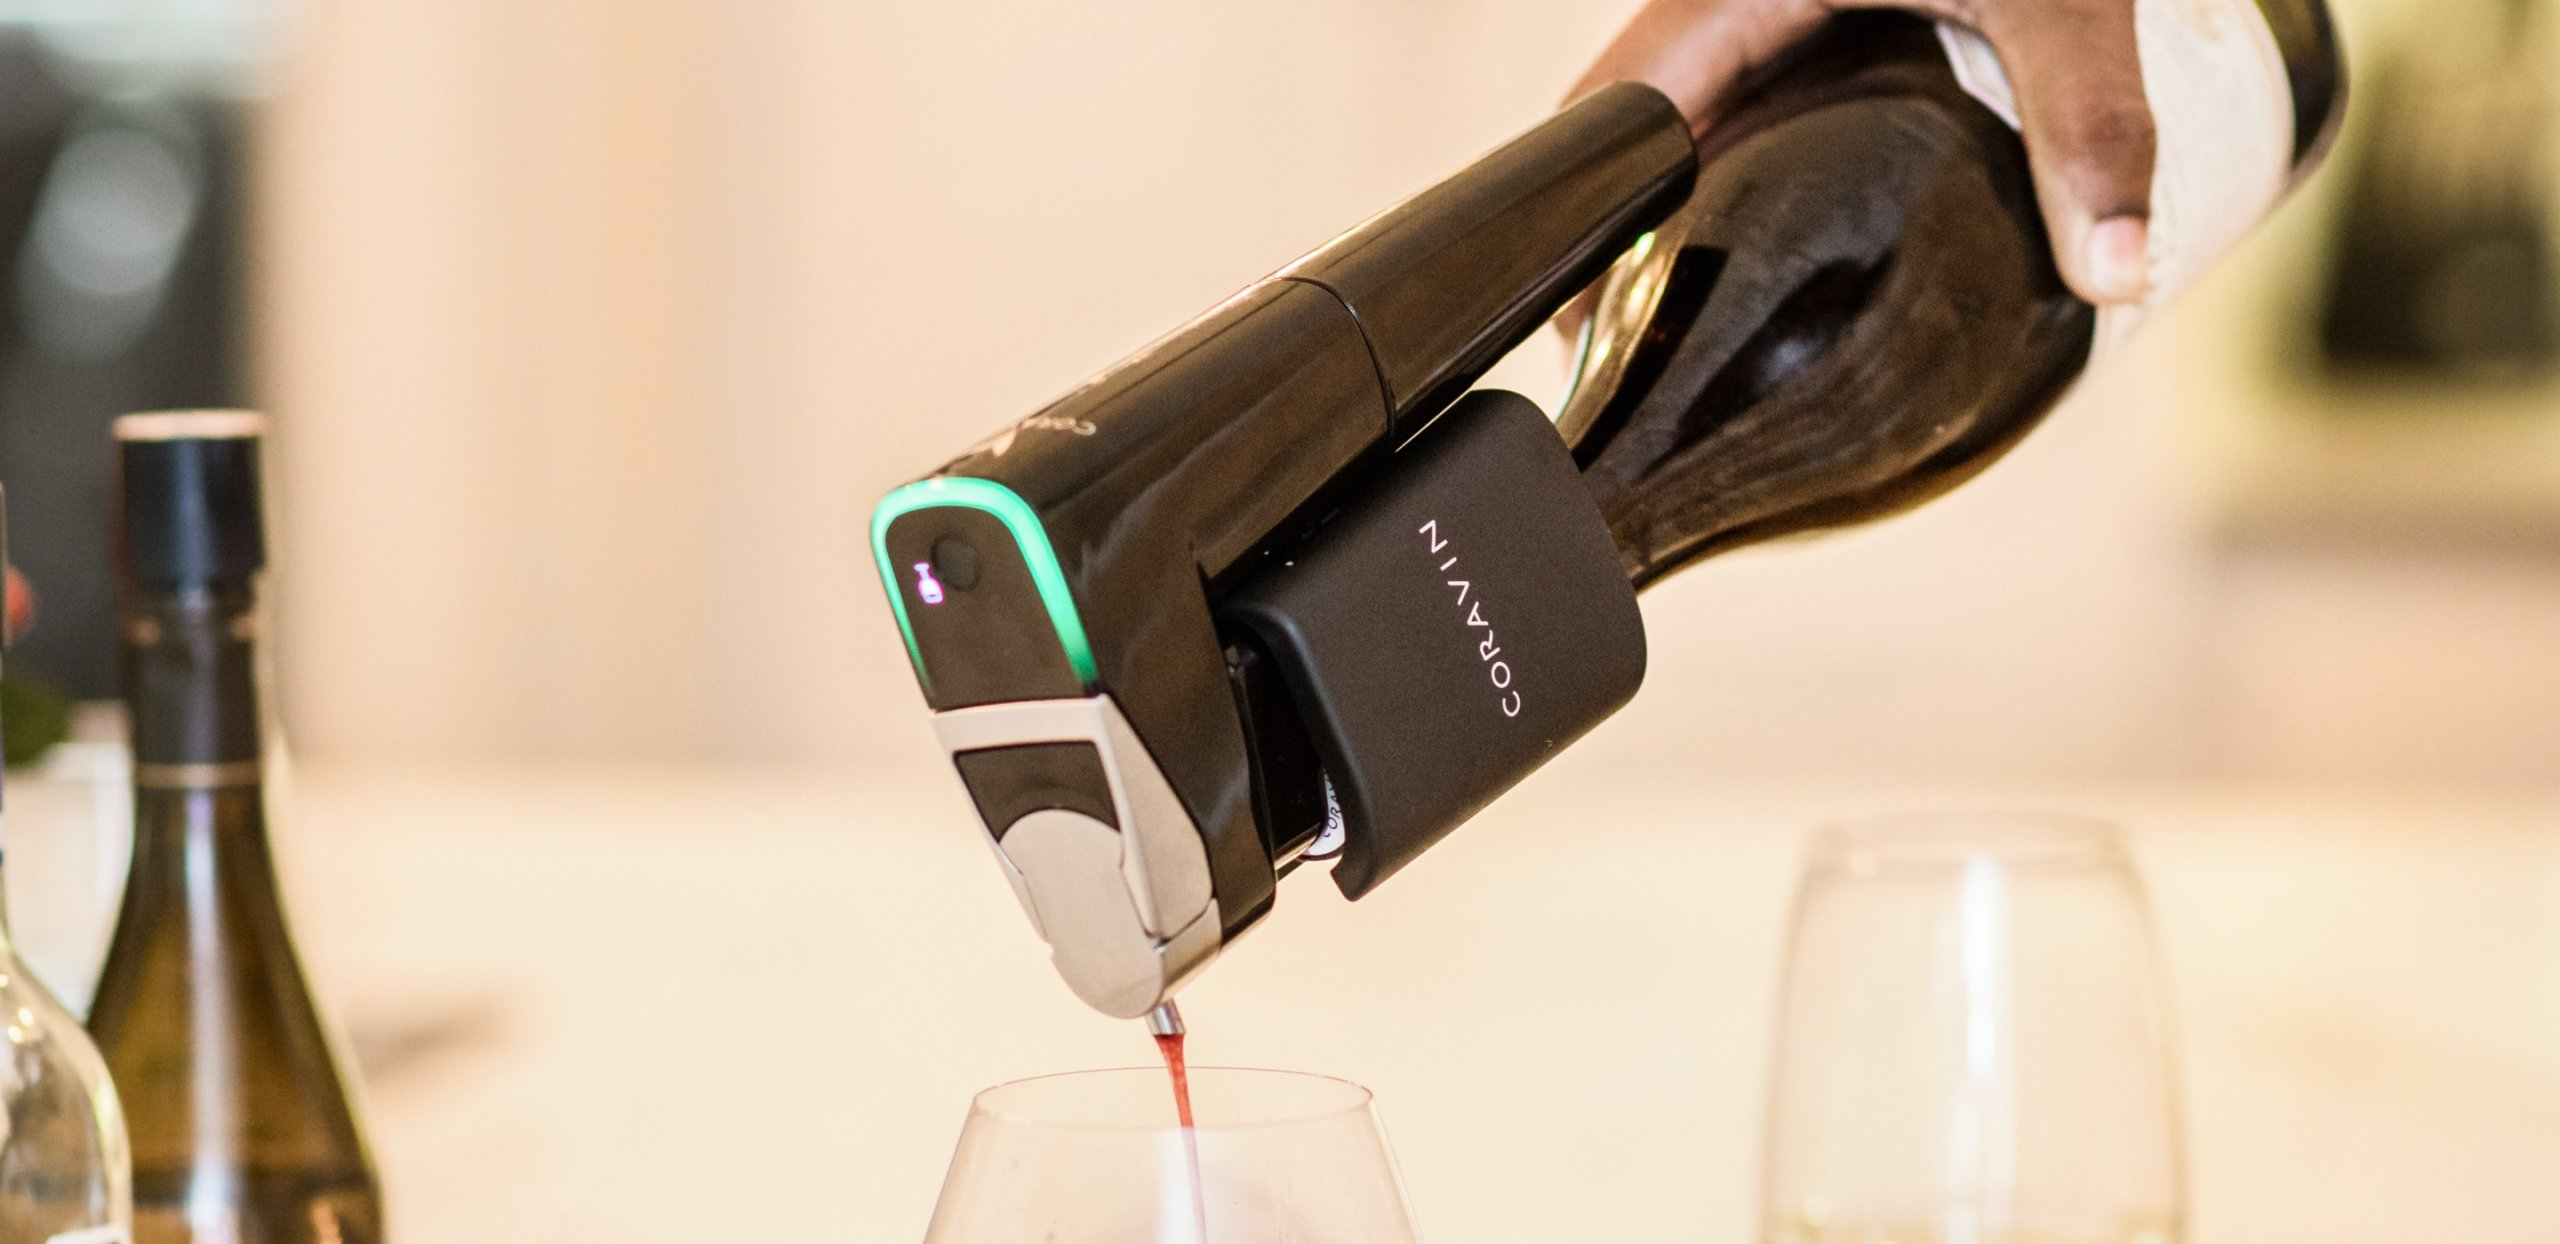 Man pouring wine with Coravin products